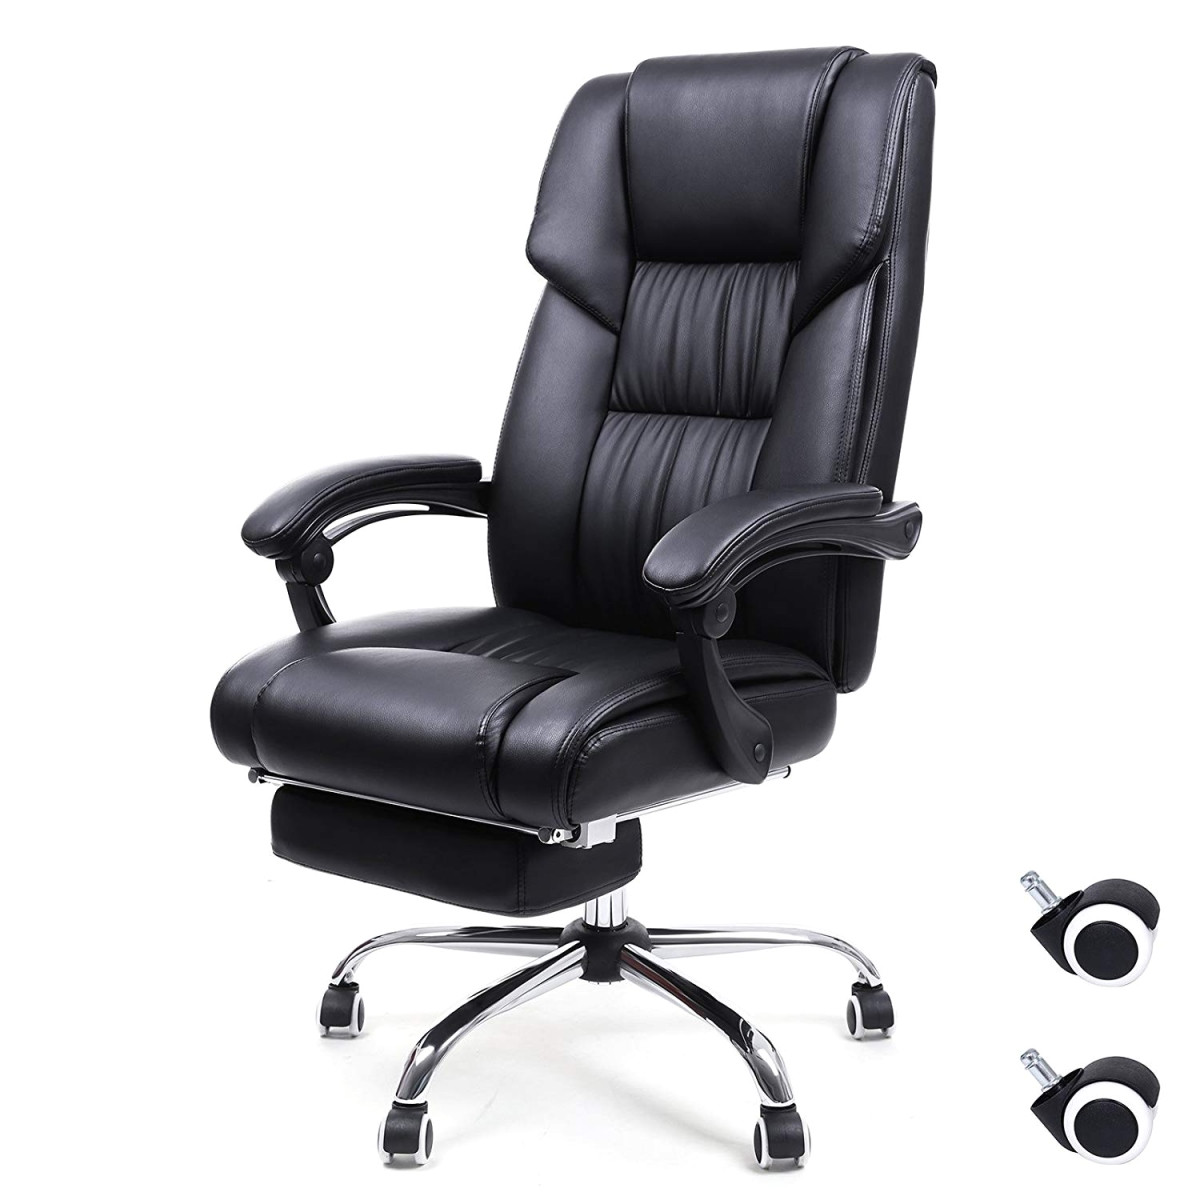 amazon songmics fice chair high back executive swivel chair with seat and pull out footrest pu